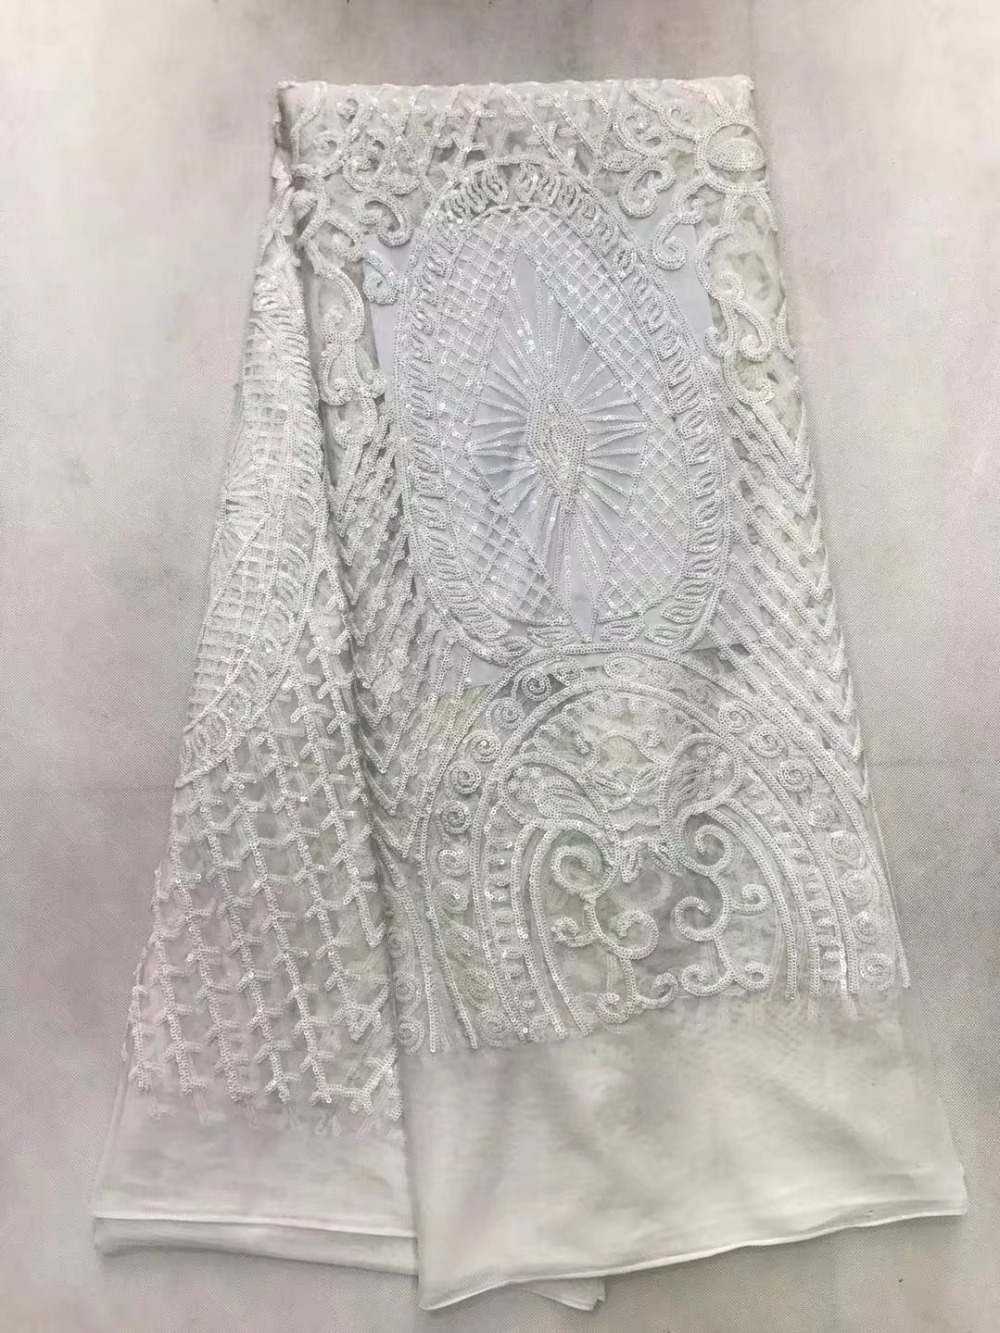 African lace fabric nigeria lace  High Quality Tulle French Lace Fabric With sequins for party dressAfrican lace fabric nigeria lace  High Quality Tulle French Lace Fabric With sequins for party dress